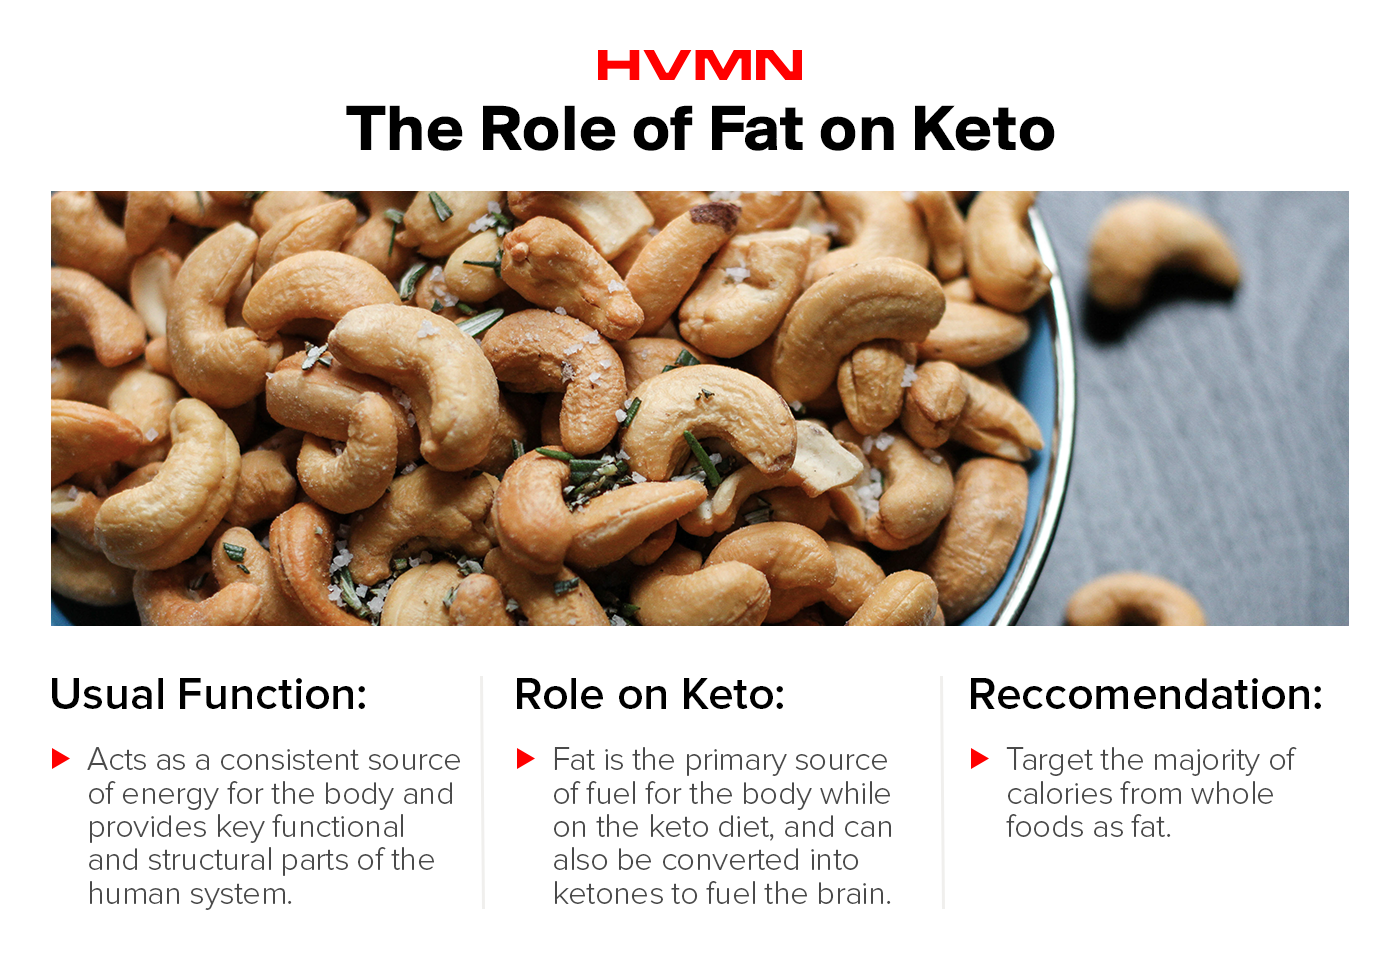 An image of cashews showing the role of fat on keto